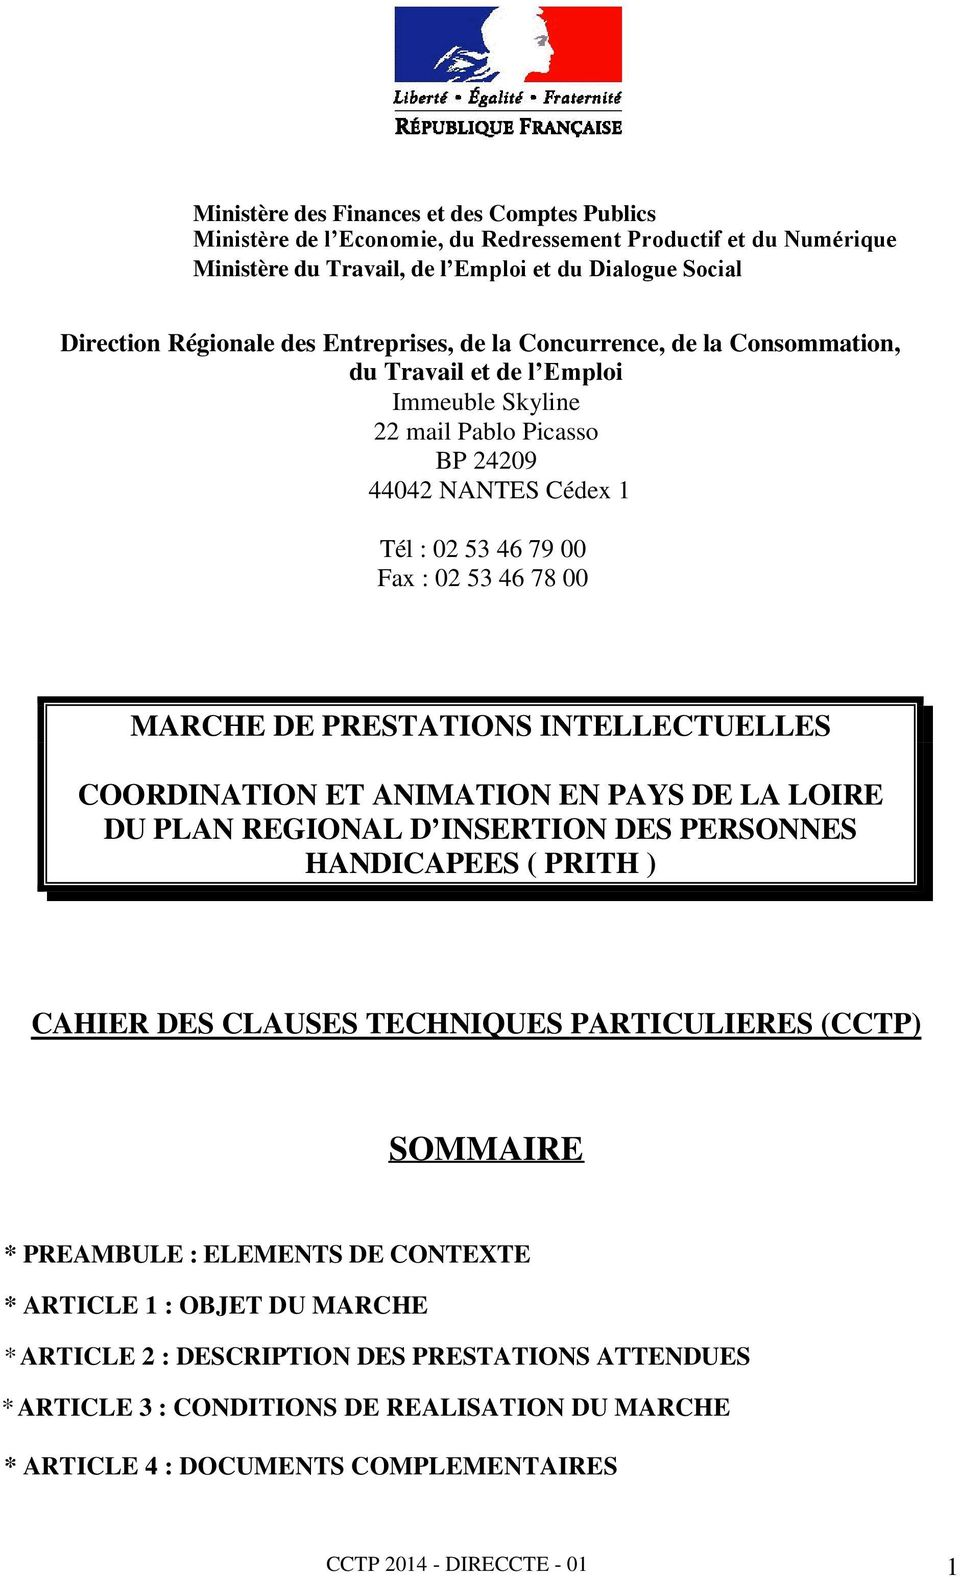 PRESTATIONS INTELLECTUELLES COORDINATION ET ANIMATION EN PAYS DE LA LOIRE DU PLAN REGIONAL D INSERTION DES PERSONNES HANDICAPEES ( PRITH ) CAHIER DES CLAUSES TECHNIQUES PARTICULIERES (CCTP) SOMMAIRE